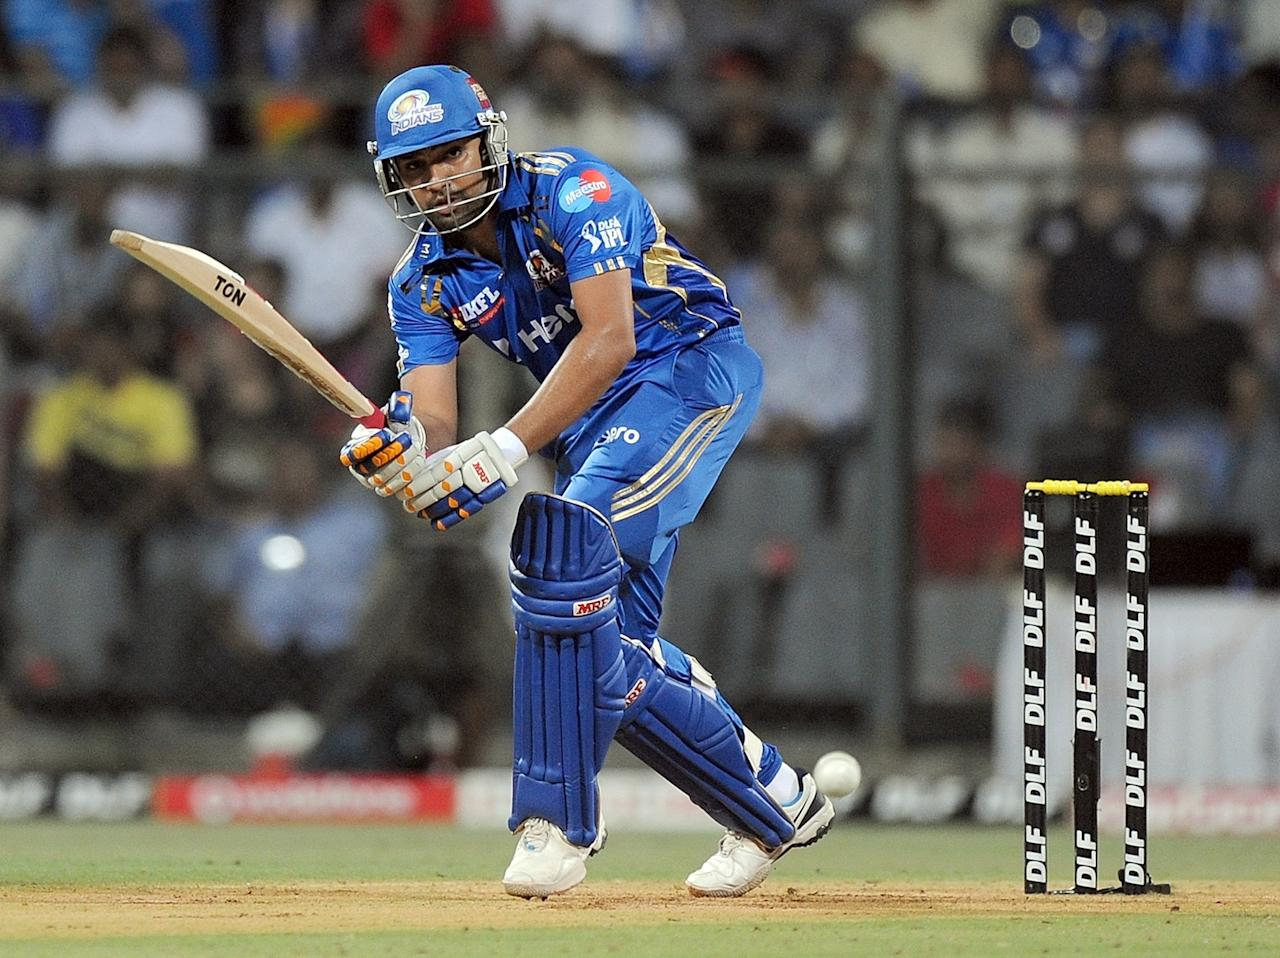 Mumbai Indians batsman Rohit Sharma plays a shot during the IPL Twenty20 cricket match between Mumbai Indians and Deccan Chargers at the Wankhede Stadium in Mumbai on April 29, 2012. RESTRICTED TO EDITORIAL USE. MOBILE USE WITHIN NEWS PACKAGE.  AFP PHOTO/Punit PARANJPEPUNIT PARANJPE/AFP/GettyImages